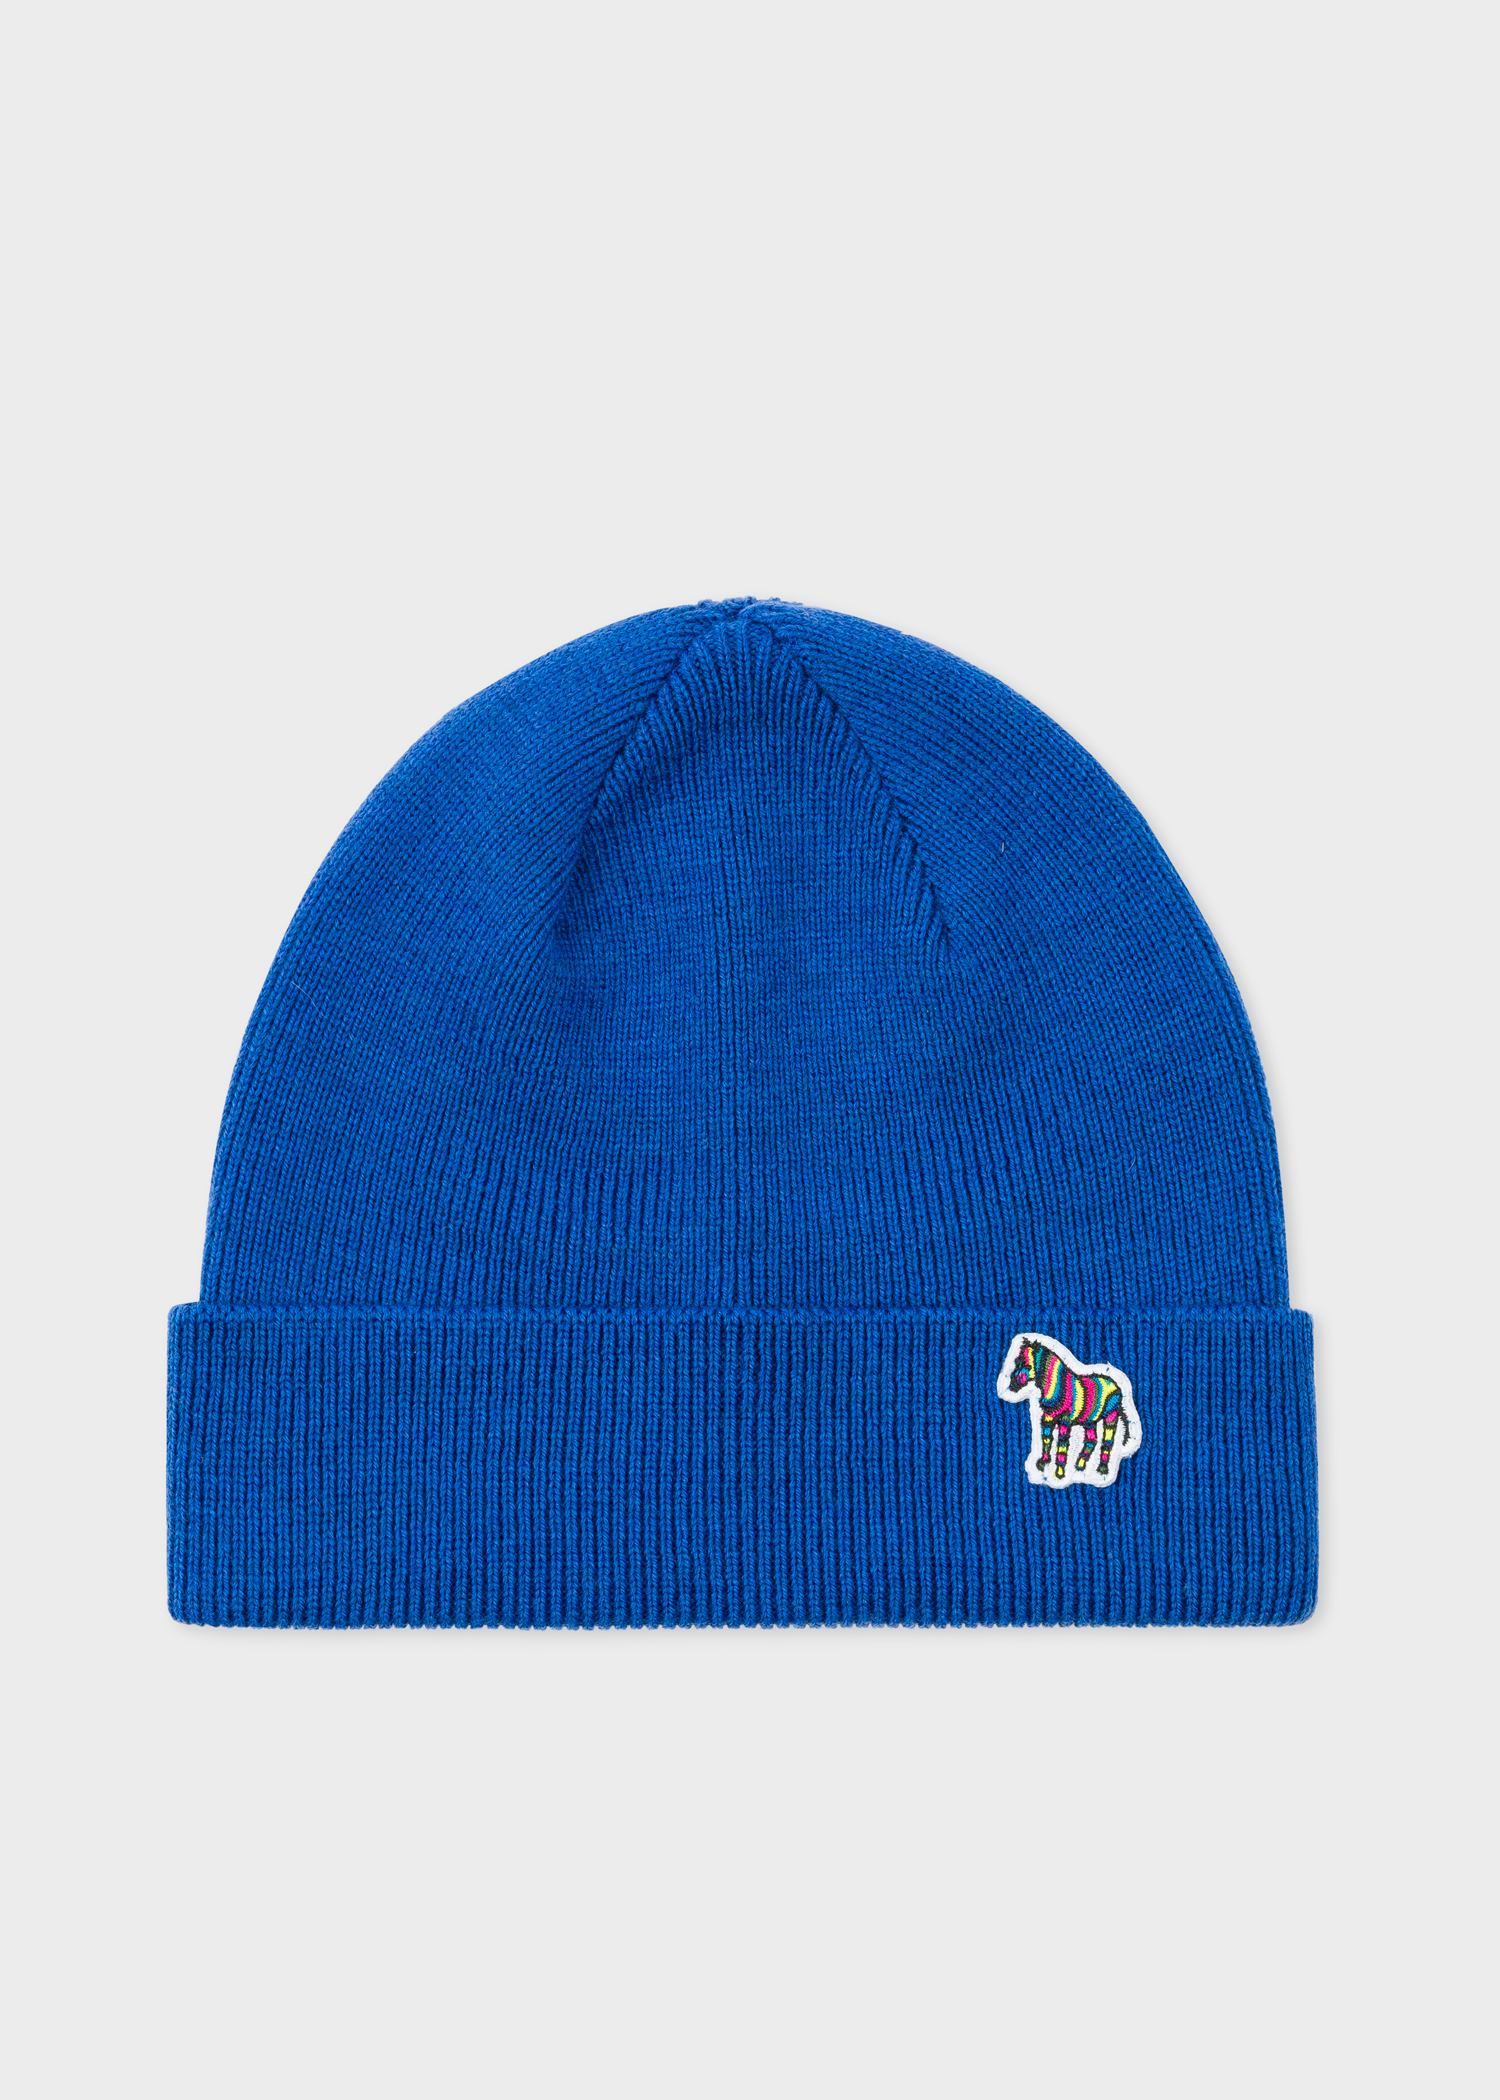 Men s Blue  Zebra  Logo Ribbed Lambswool Beanie Hat - Paul Smith Asia 1655f7082fe